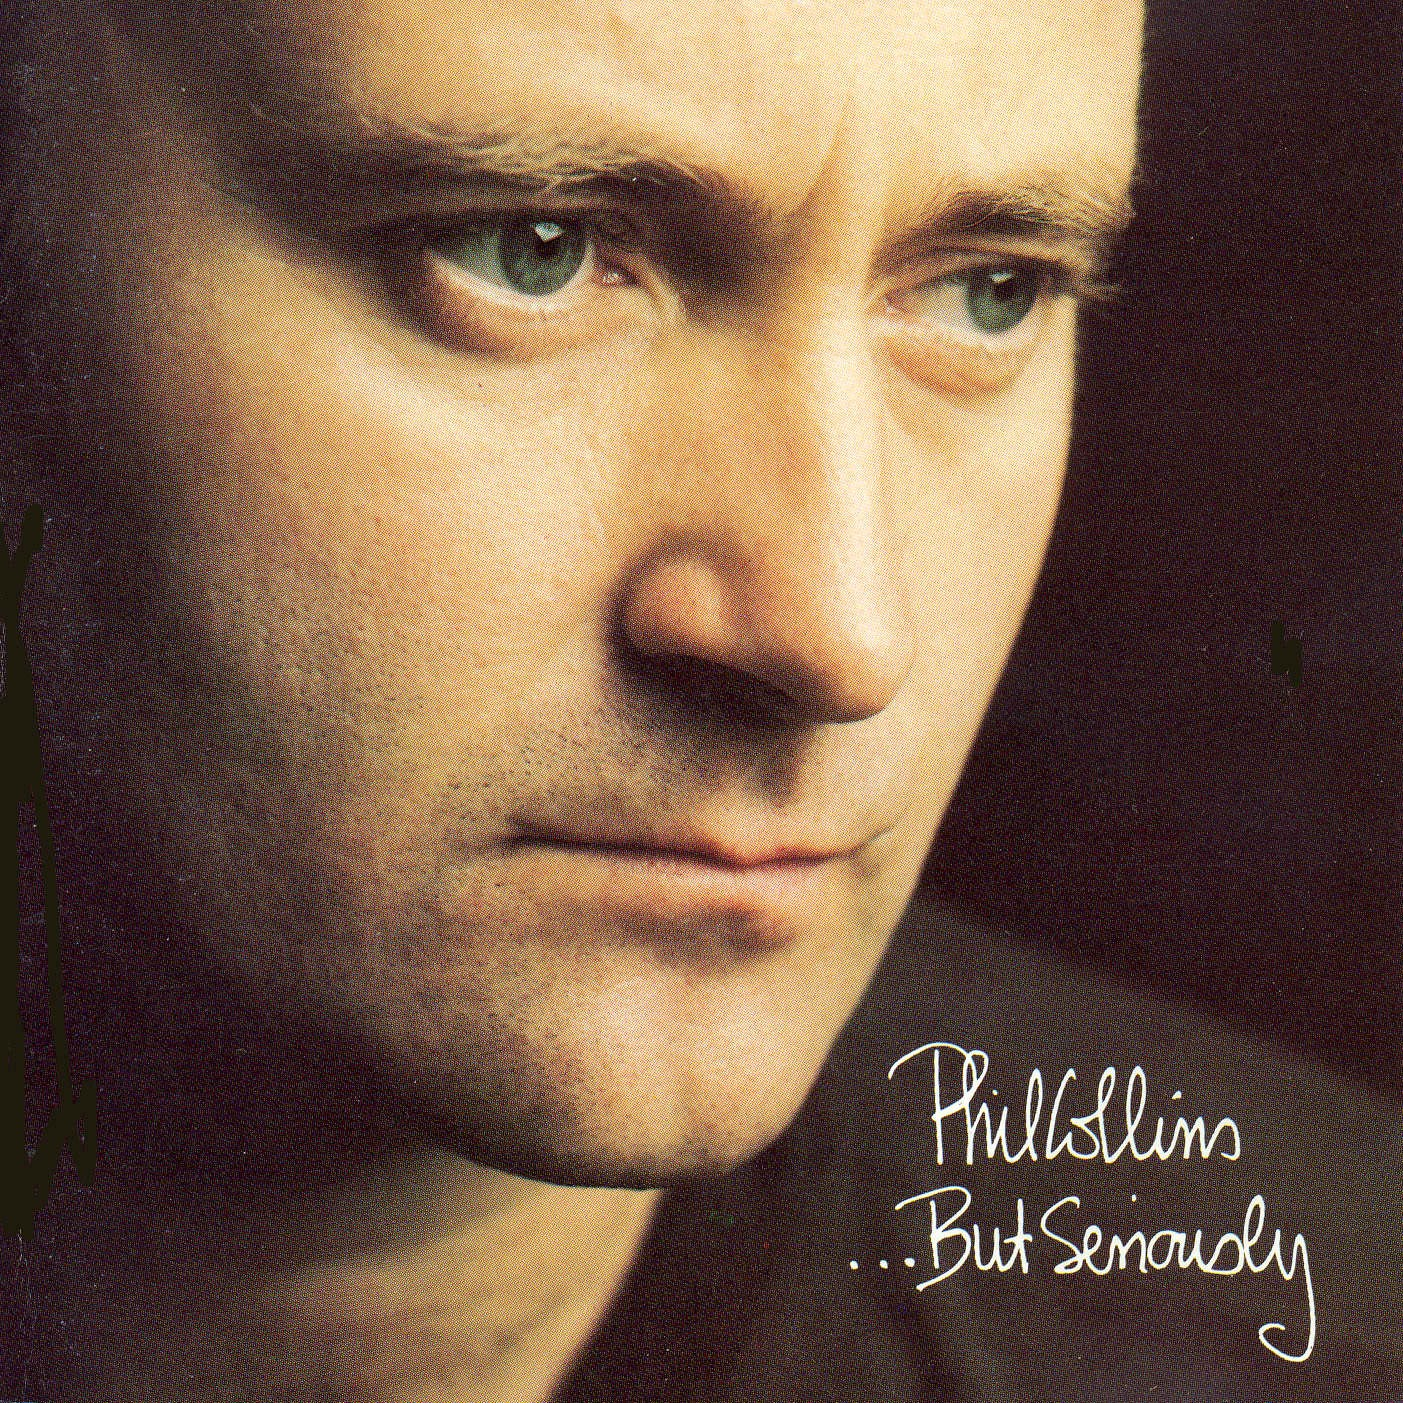 http://1.bp.blogspot.com/-b9GRcldeK80/TZrJIw3hCFI/AAAAAAAAAT8/I_y19myerHE/s1600/152573_0_Phil_Collins_But_Seriously_198.jpg